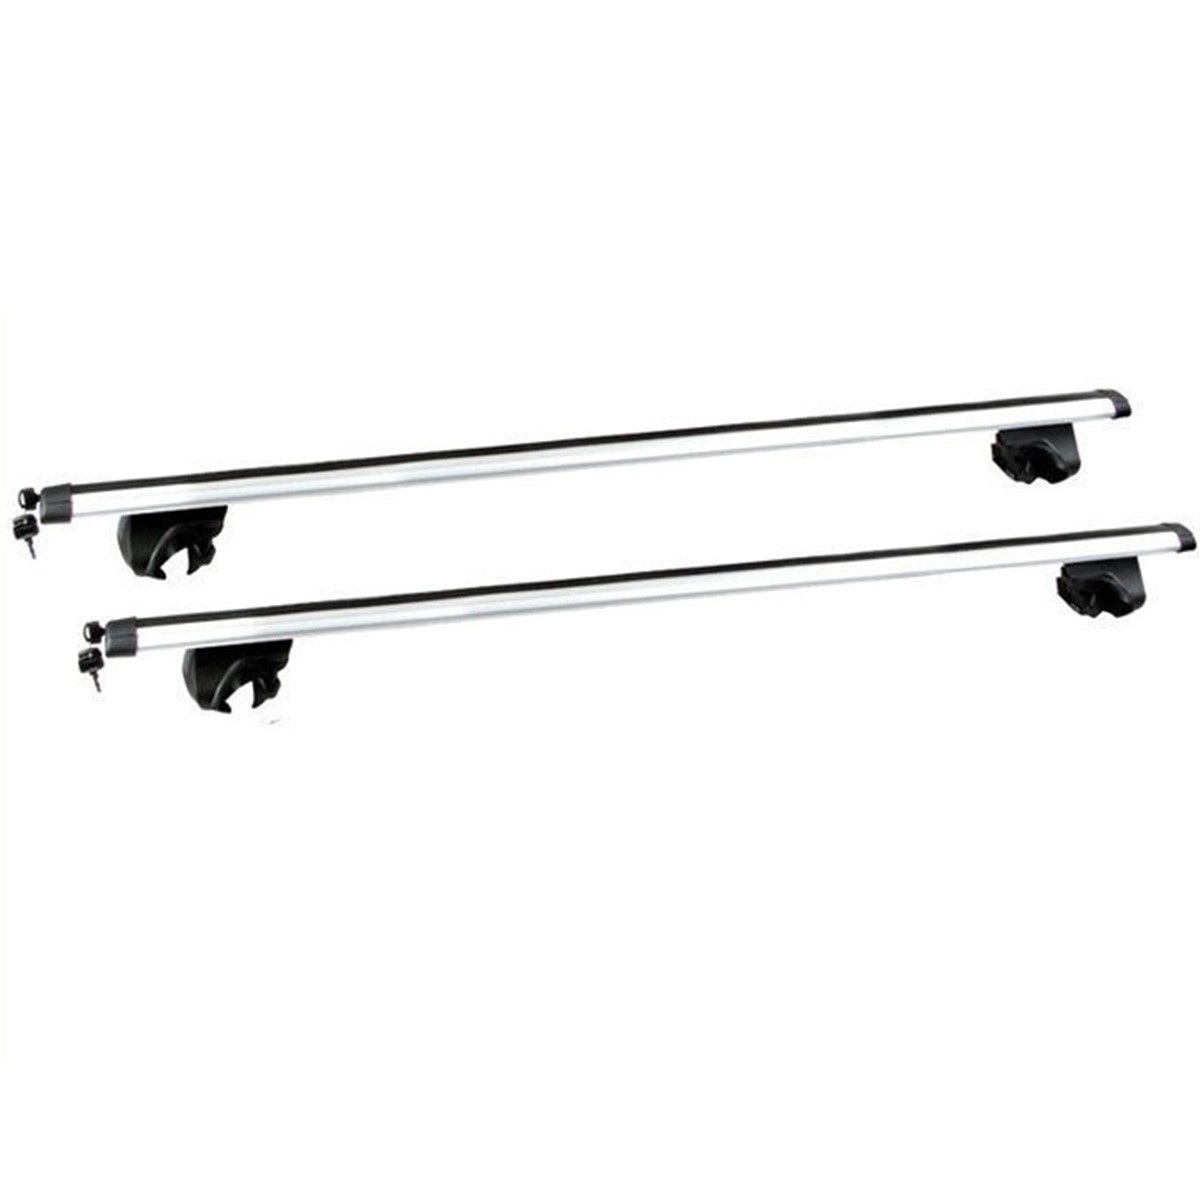 Car Roof Rack Crossbar Luggage Rack 1200mm